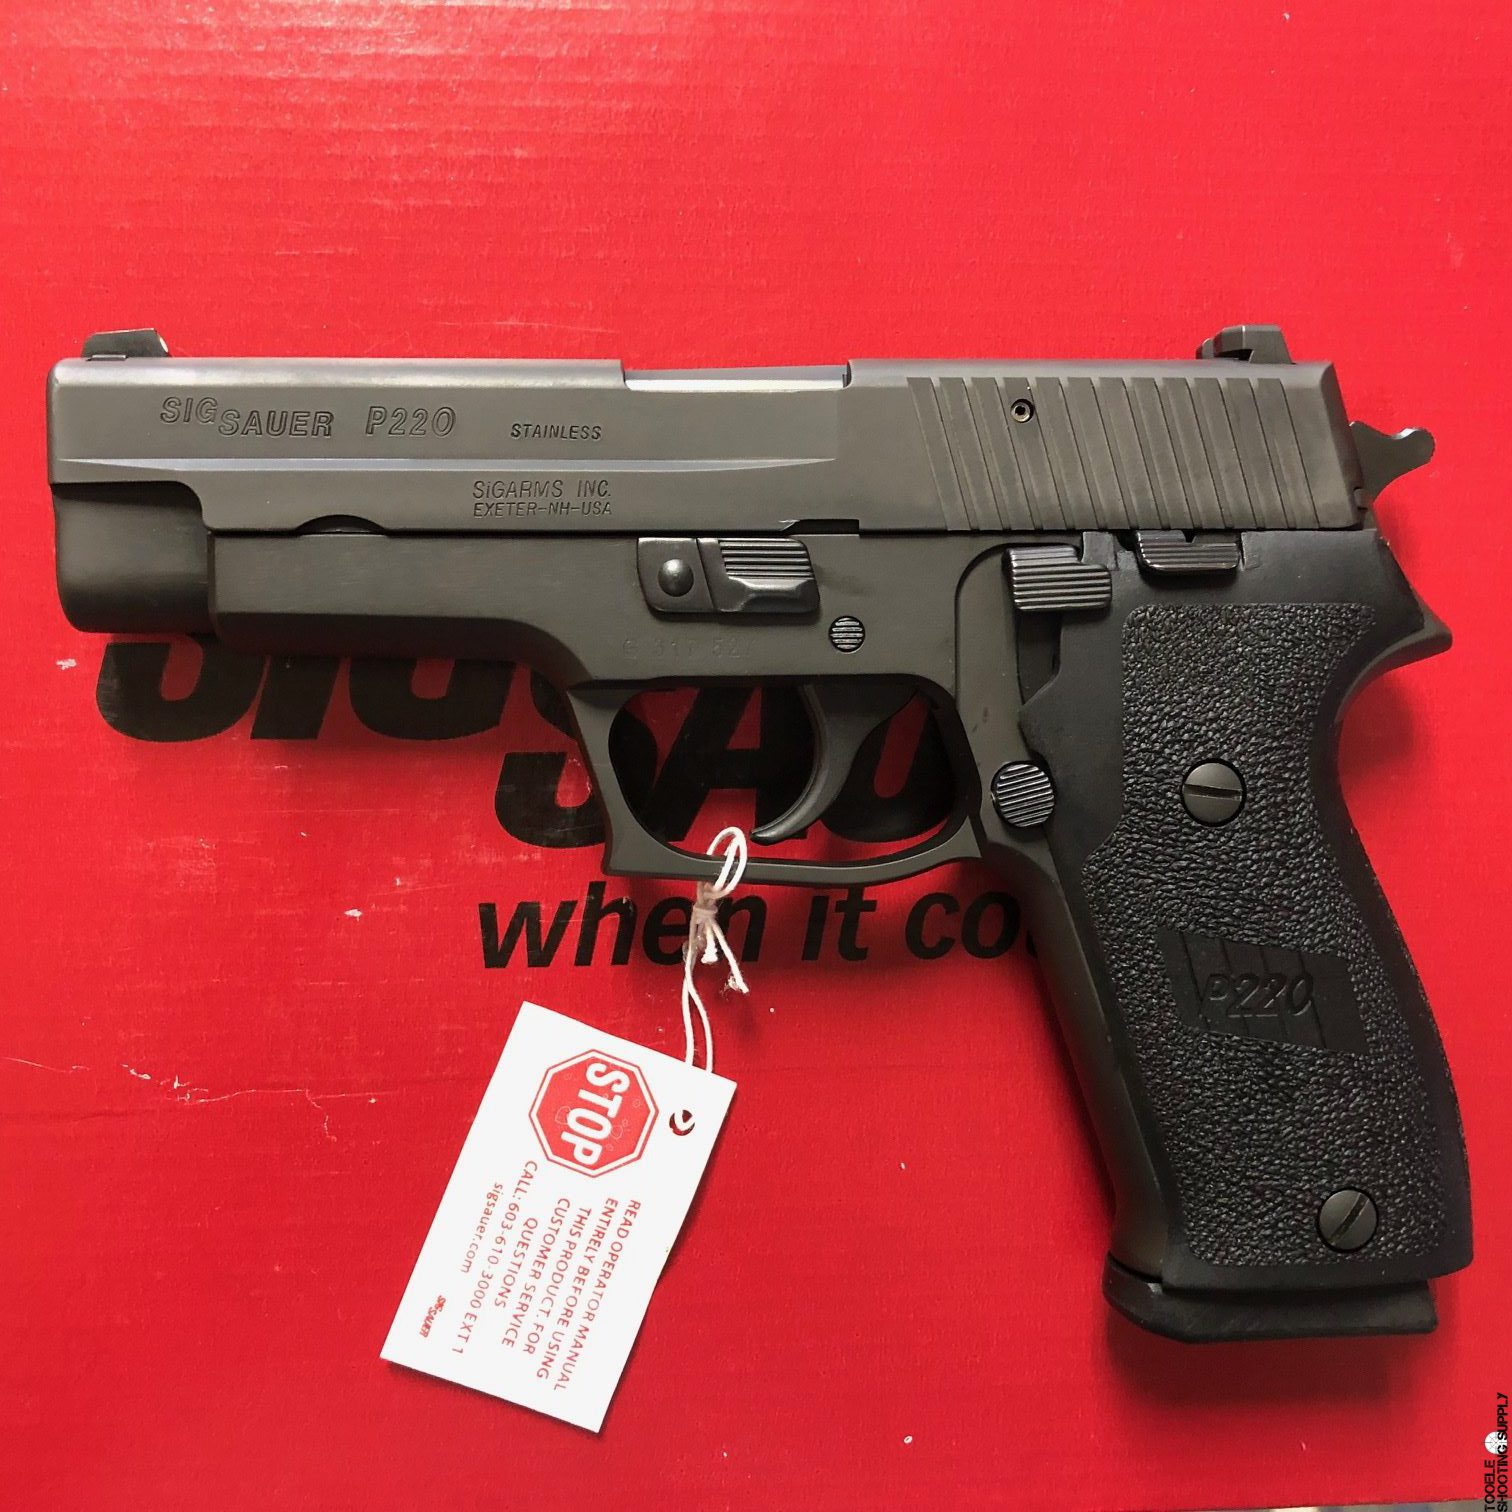 Sig Sauer P220  45 ACP Full-Size Pistol, Factory Certified Pre-Owned  (C P O ) 8-RD - Sig Sauer UD220-45-B1